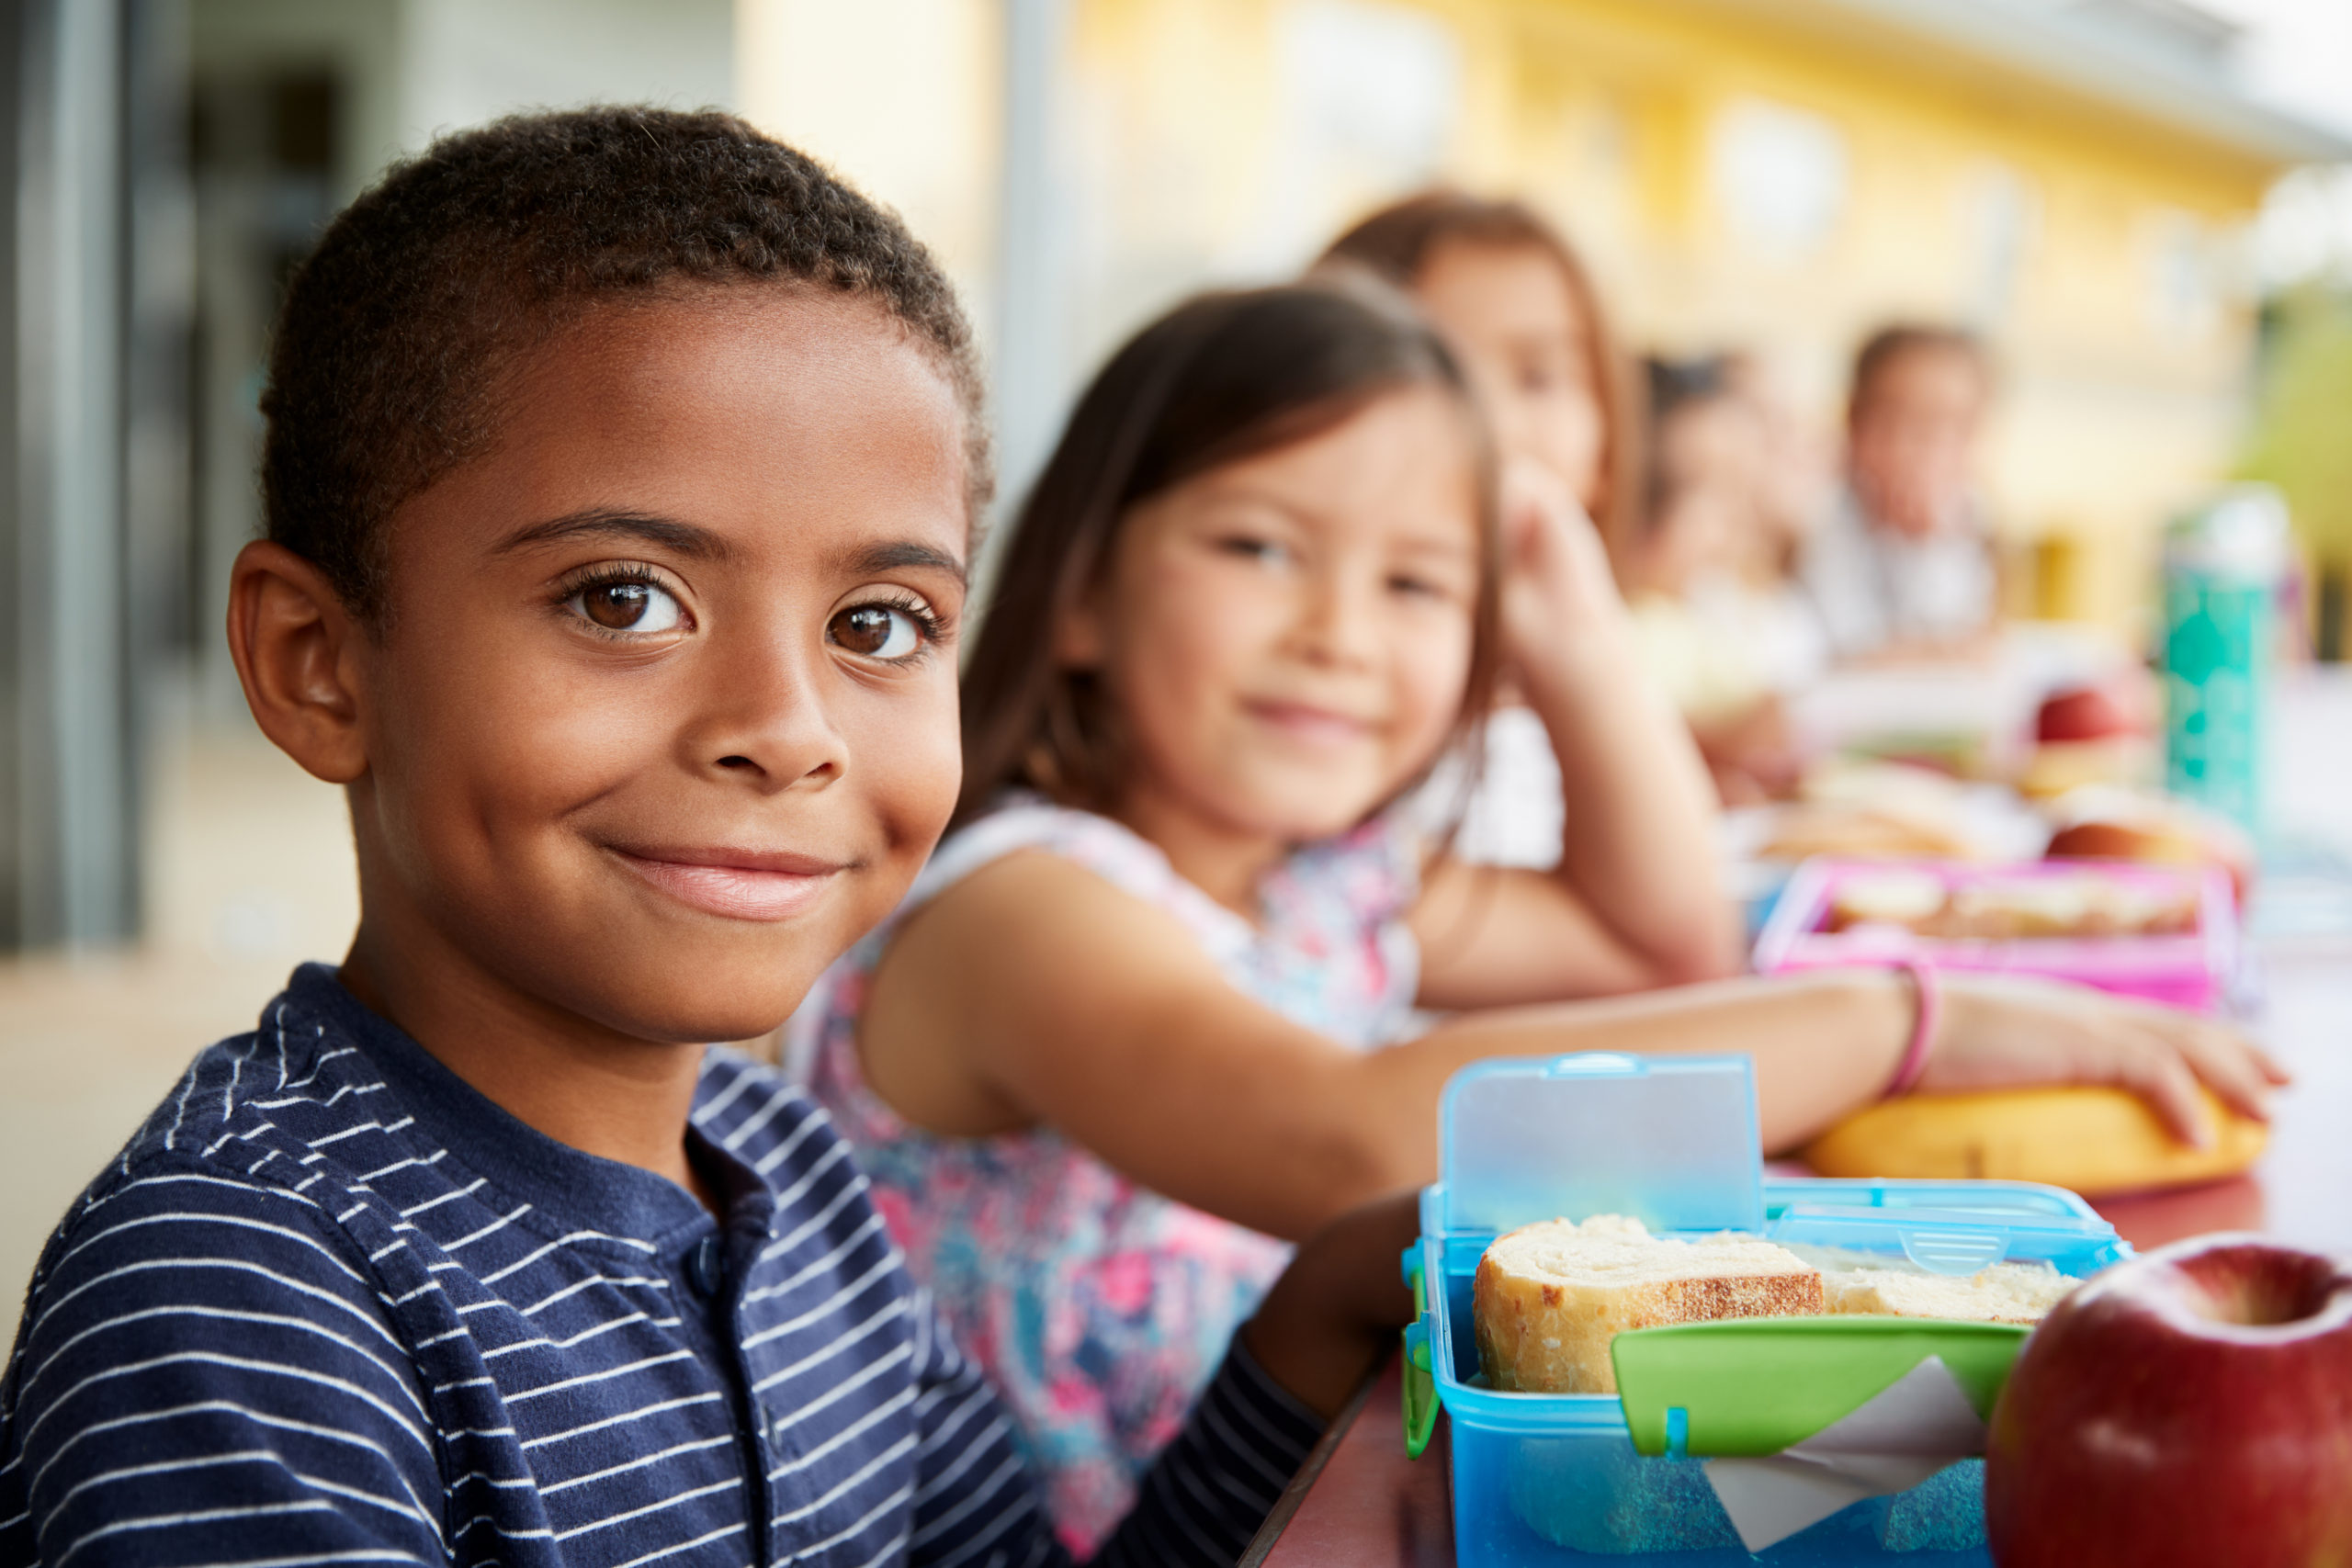 Children at school smiling at the lunch table